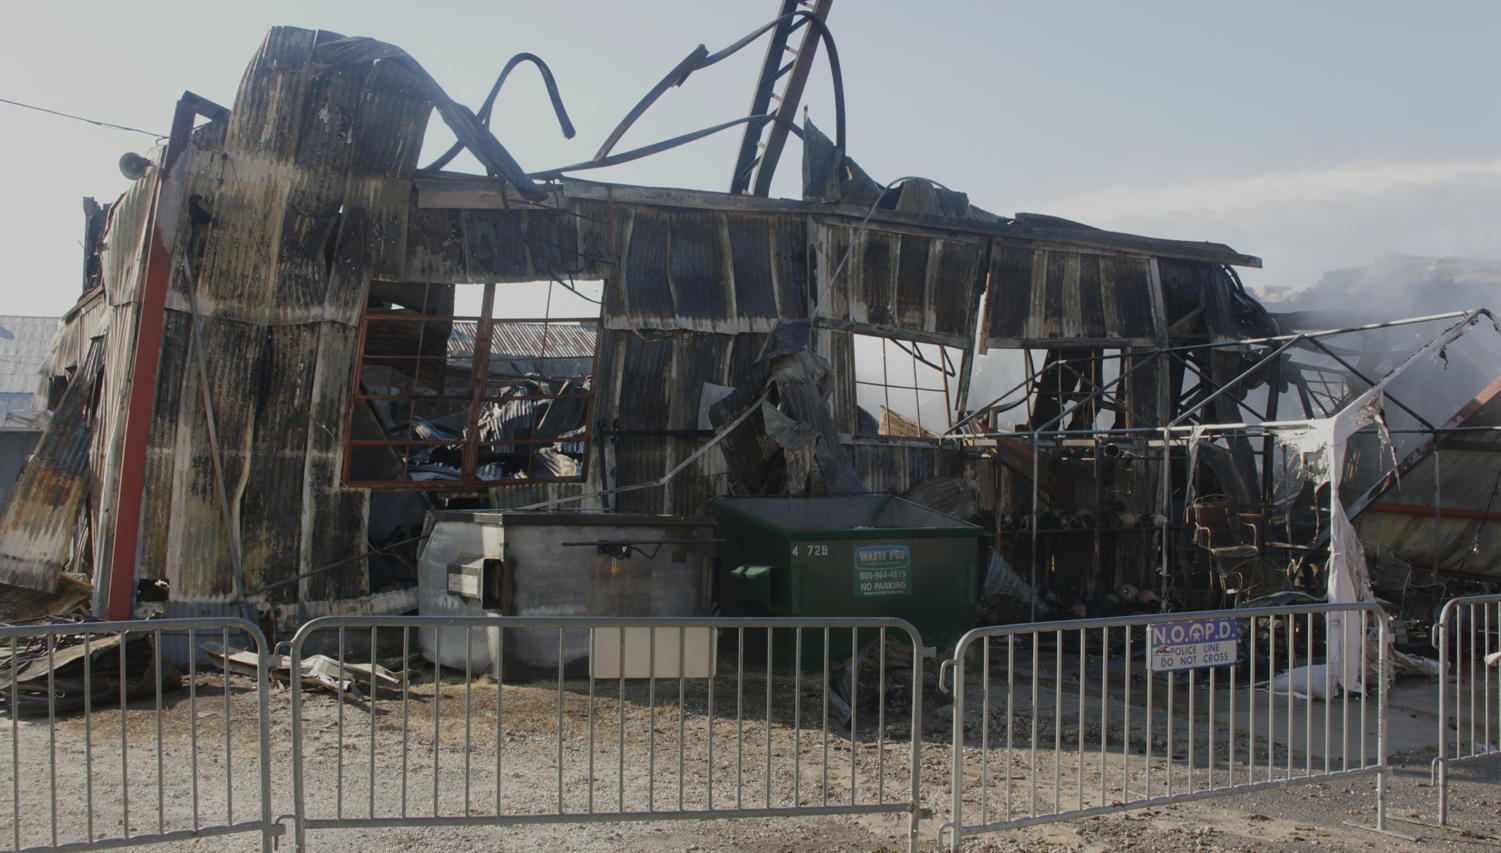 The warehouse holding Canal Furniture Liquidators and NOLA Til Ya Die, pictured here on April 24, stands damaged after being engulfed in flames Monday morning.  The cause of the fire has yet to be discovered and is under an ongoing investigation. Photo credit: Caleb Beck